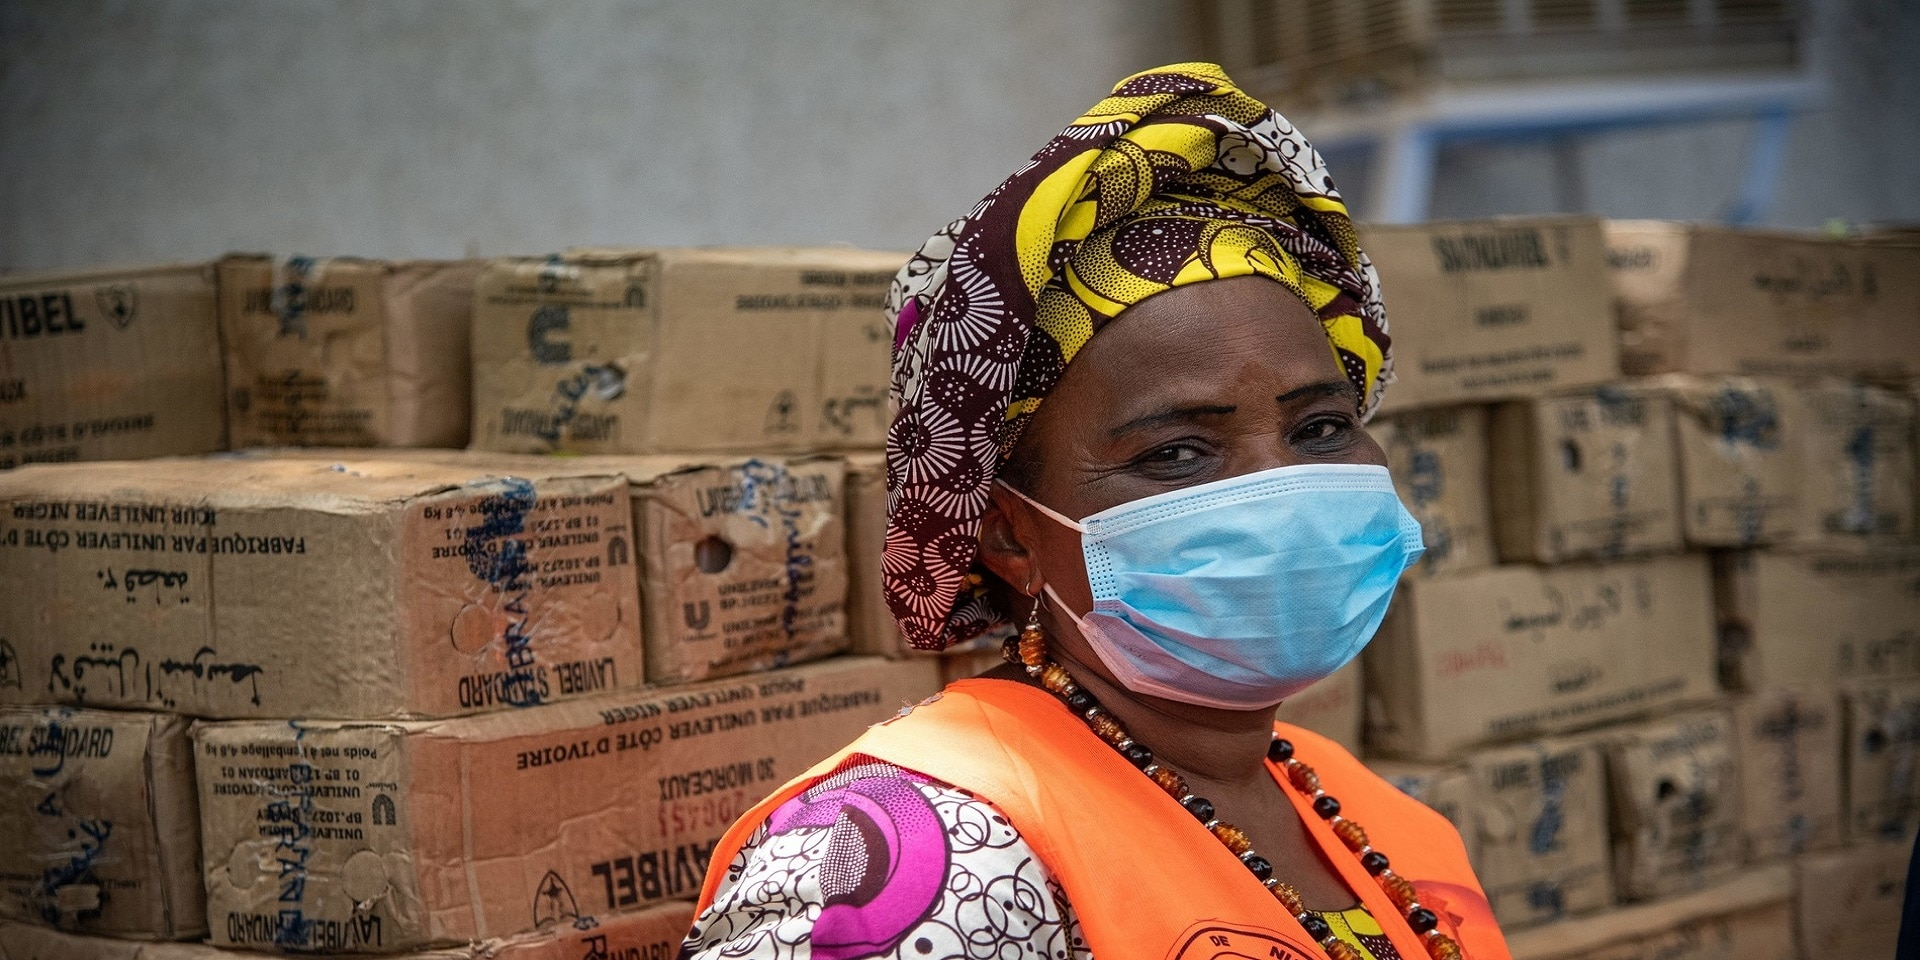 An African woman wearing a mask and an orange vest in a warehouse stacked with boxes